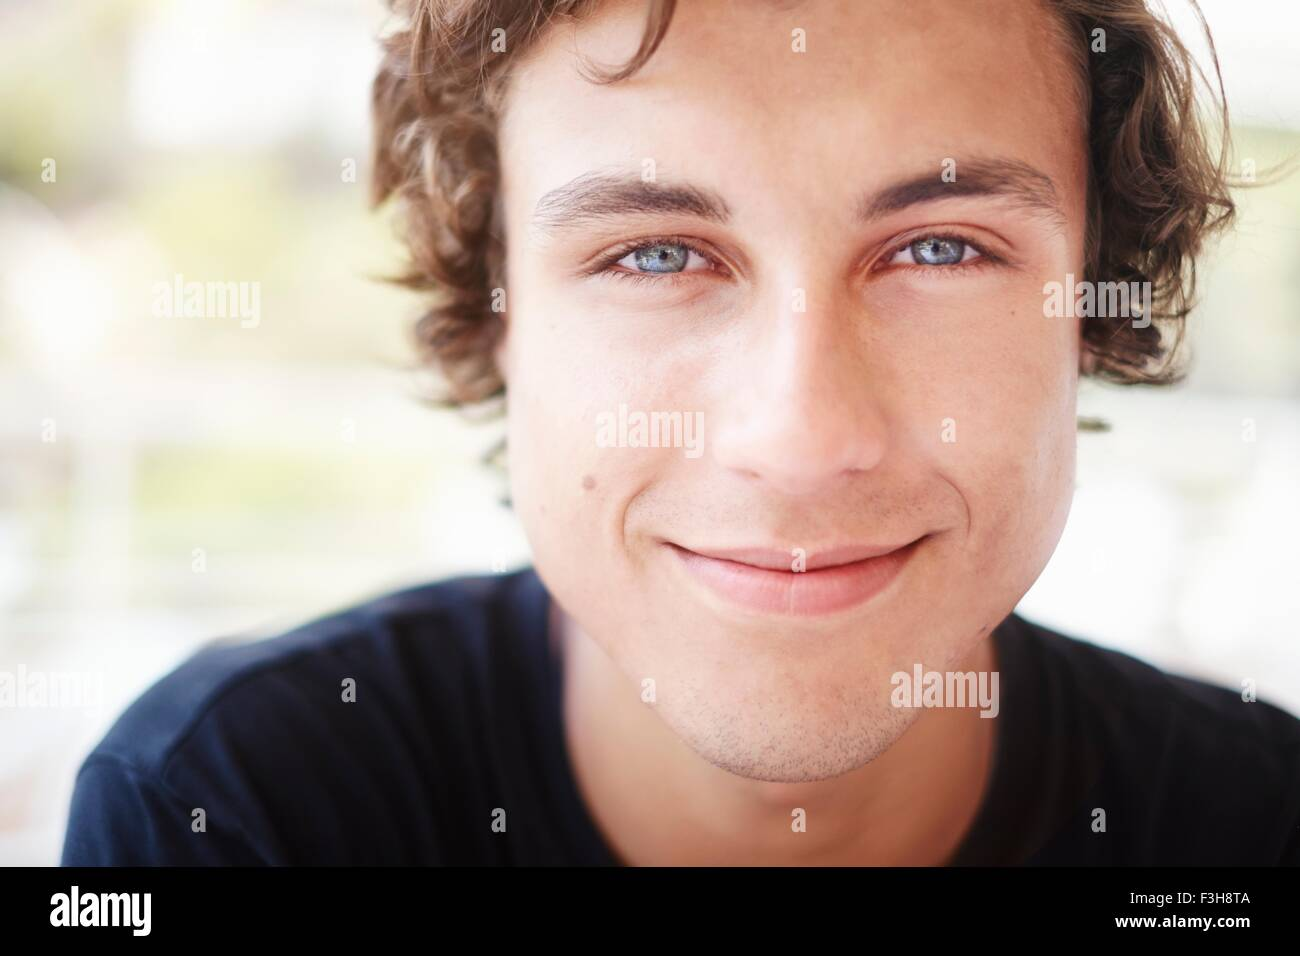 Close up portrait of young man with blue eyes - Stock Image